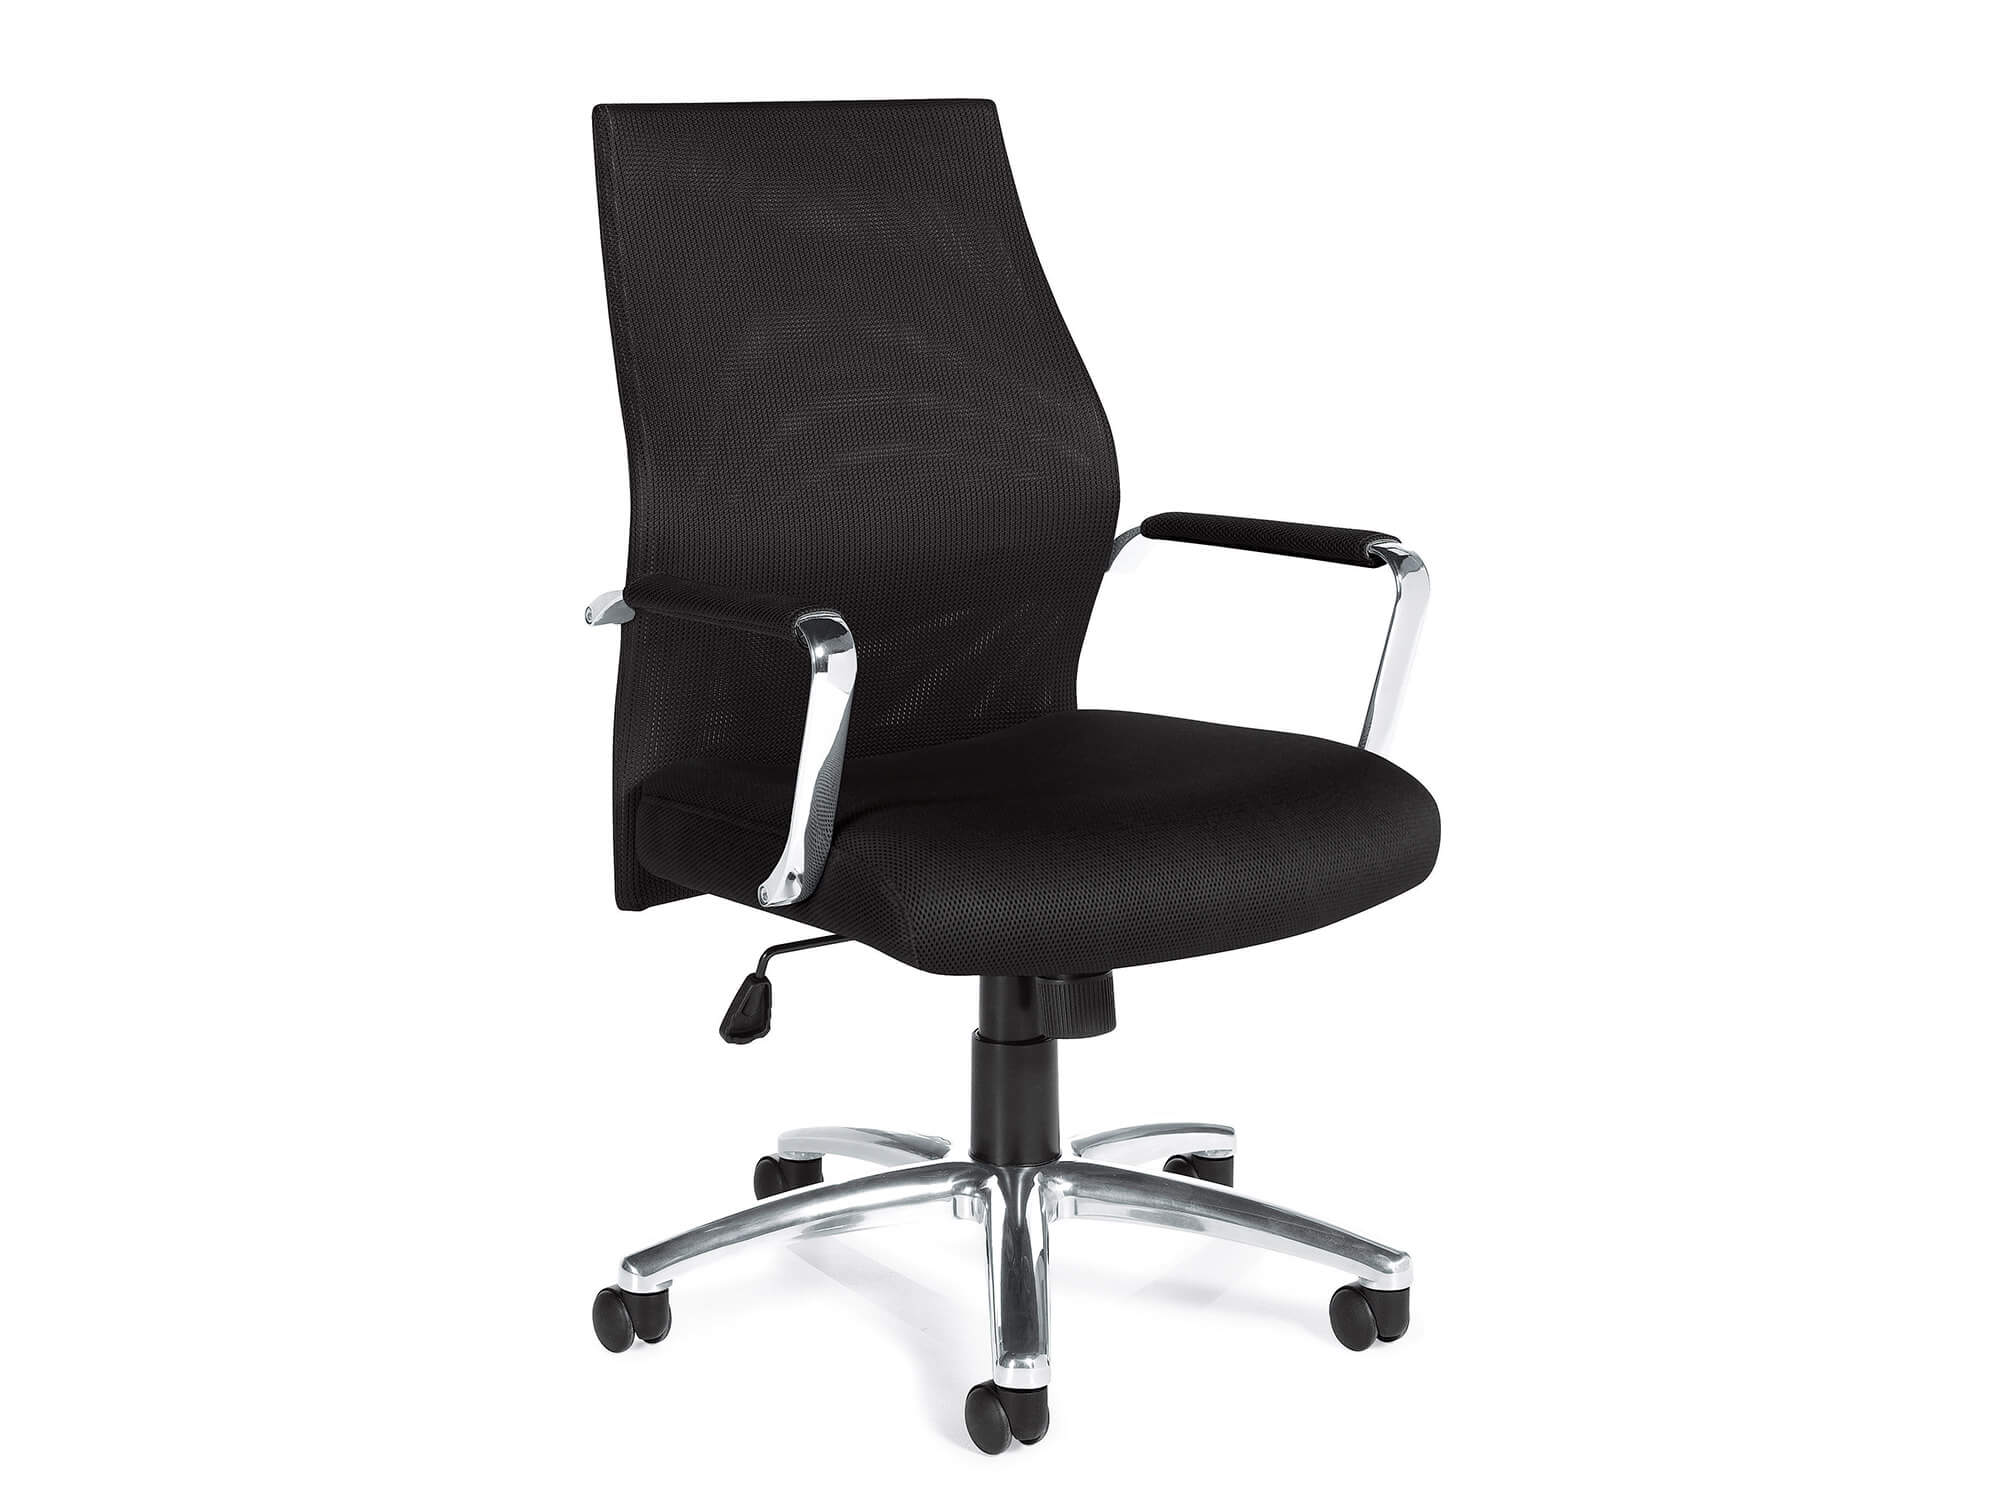 chairs-for-office-modern-office-chair.jpg